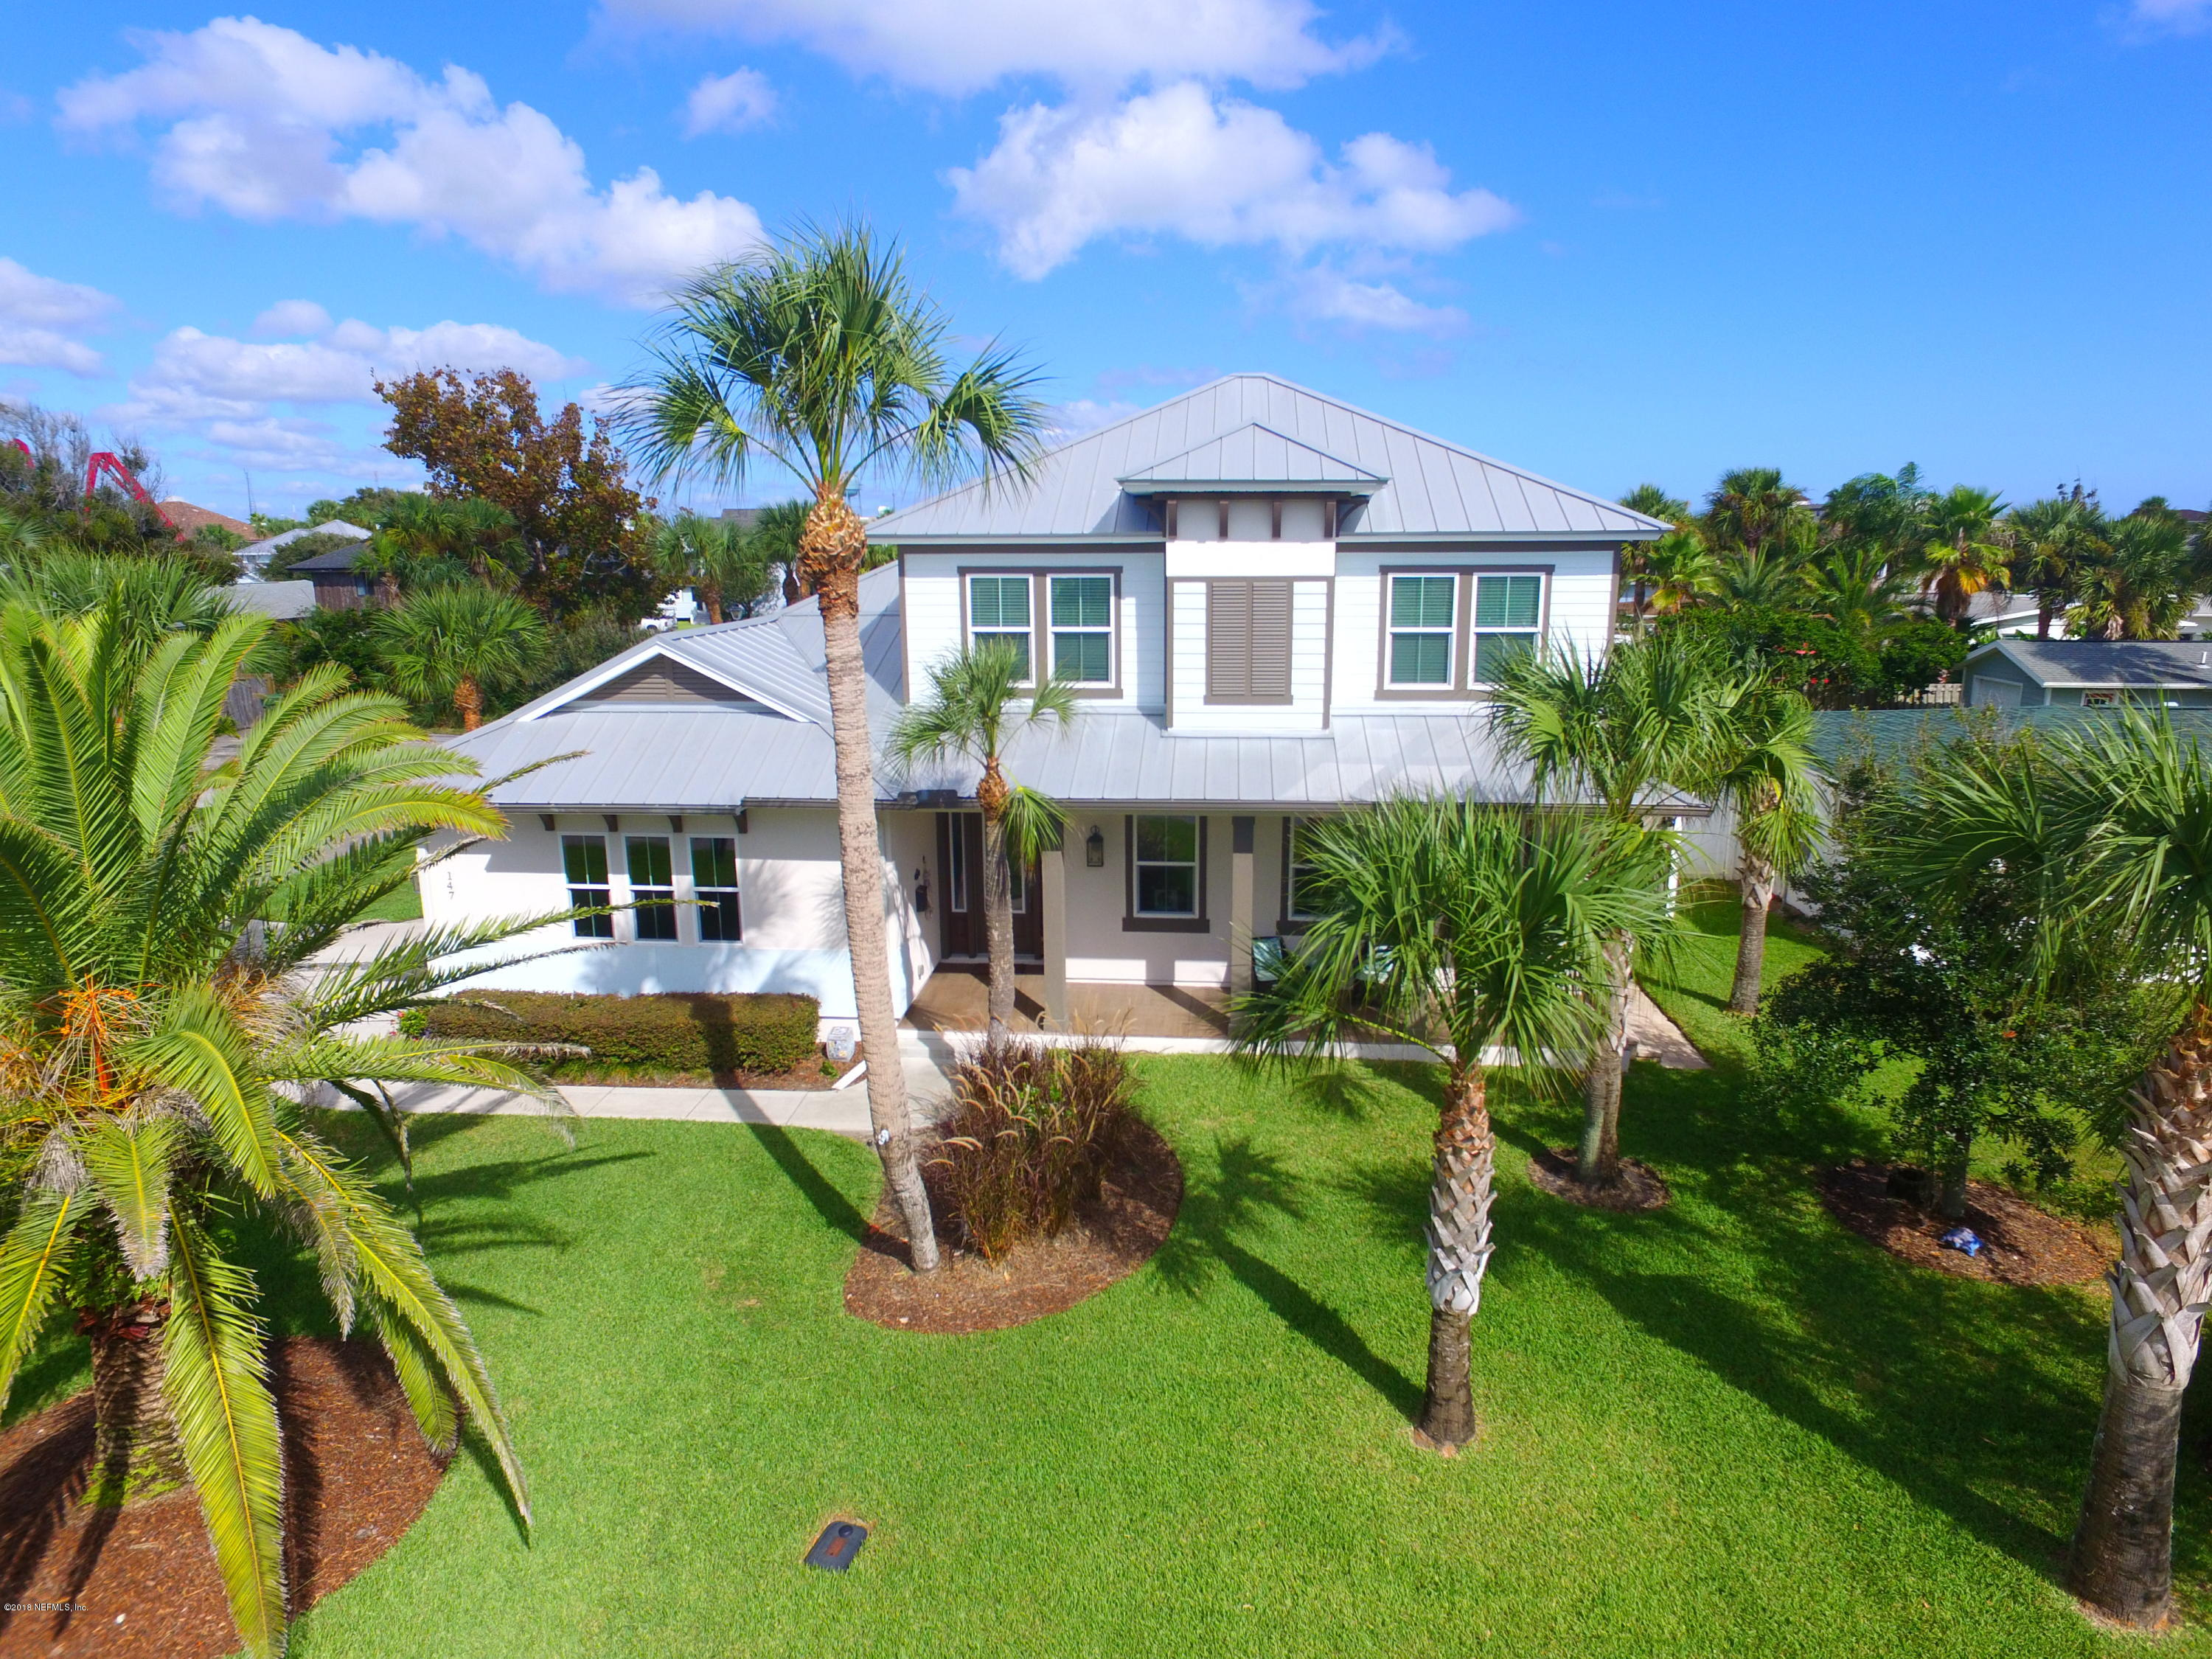 147 32ND, JACKSONVILLE BEACH, FLORIDA 32250, 5 Bedrooms Bedrooms, ,4 BathroomsBathrooms,Residential - single family,For sale,32ND,962346